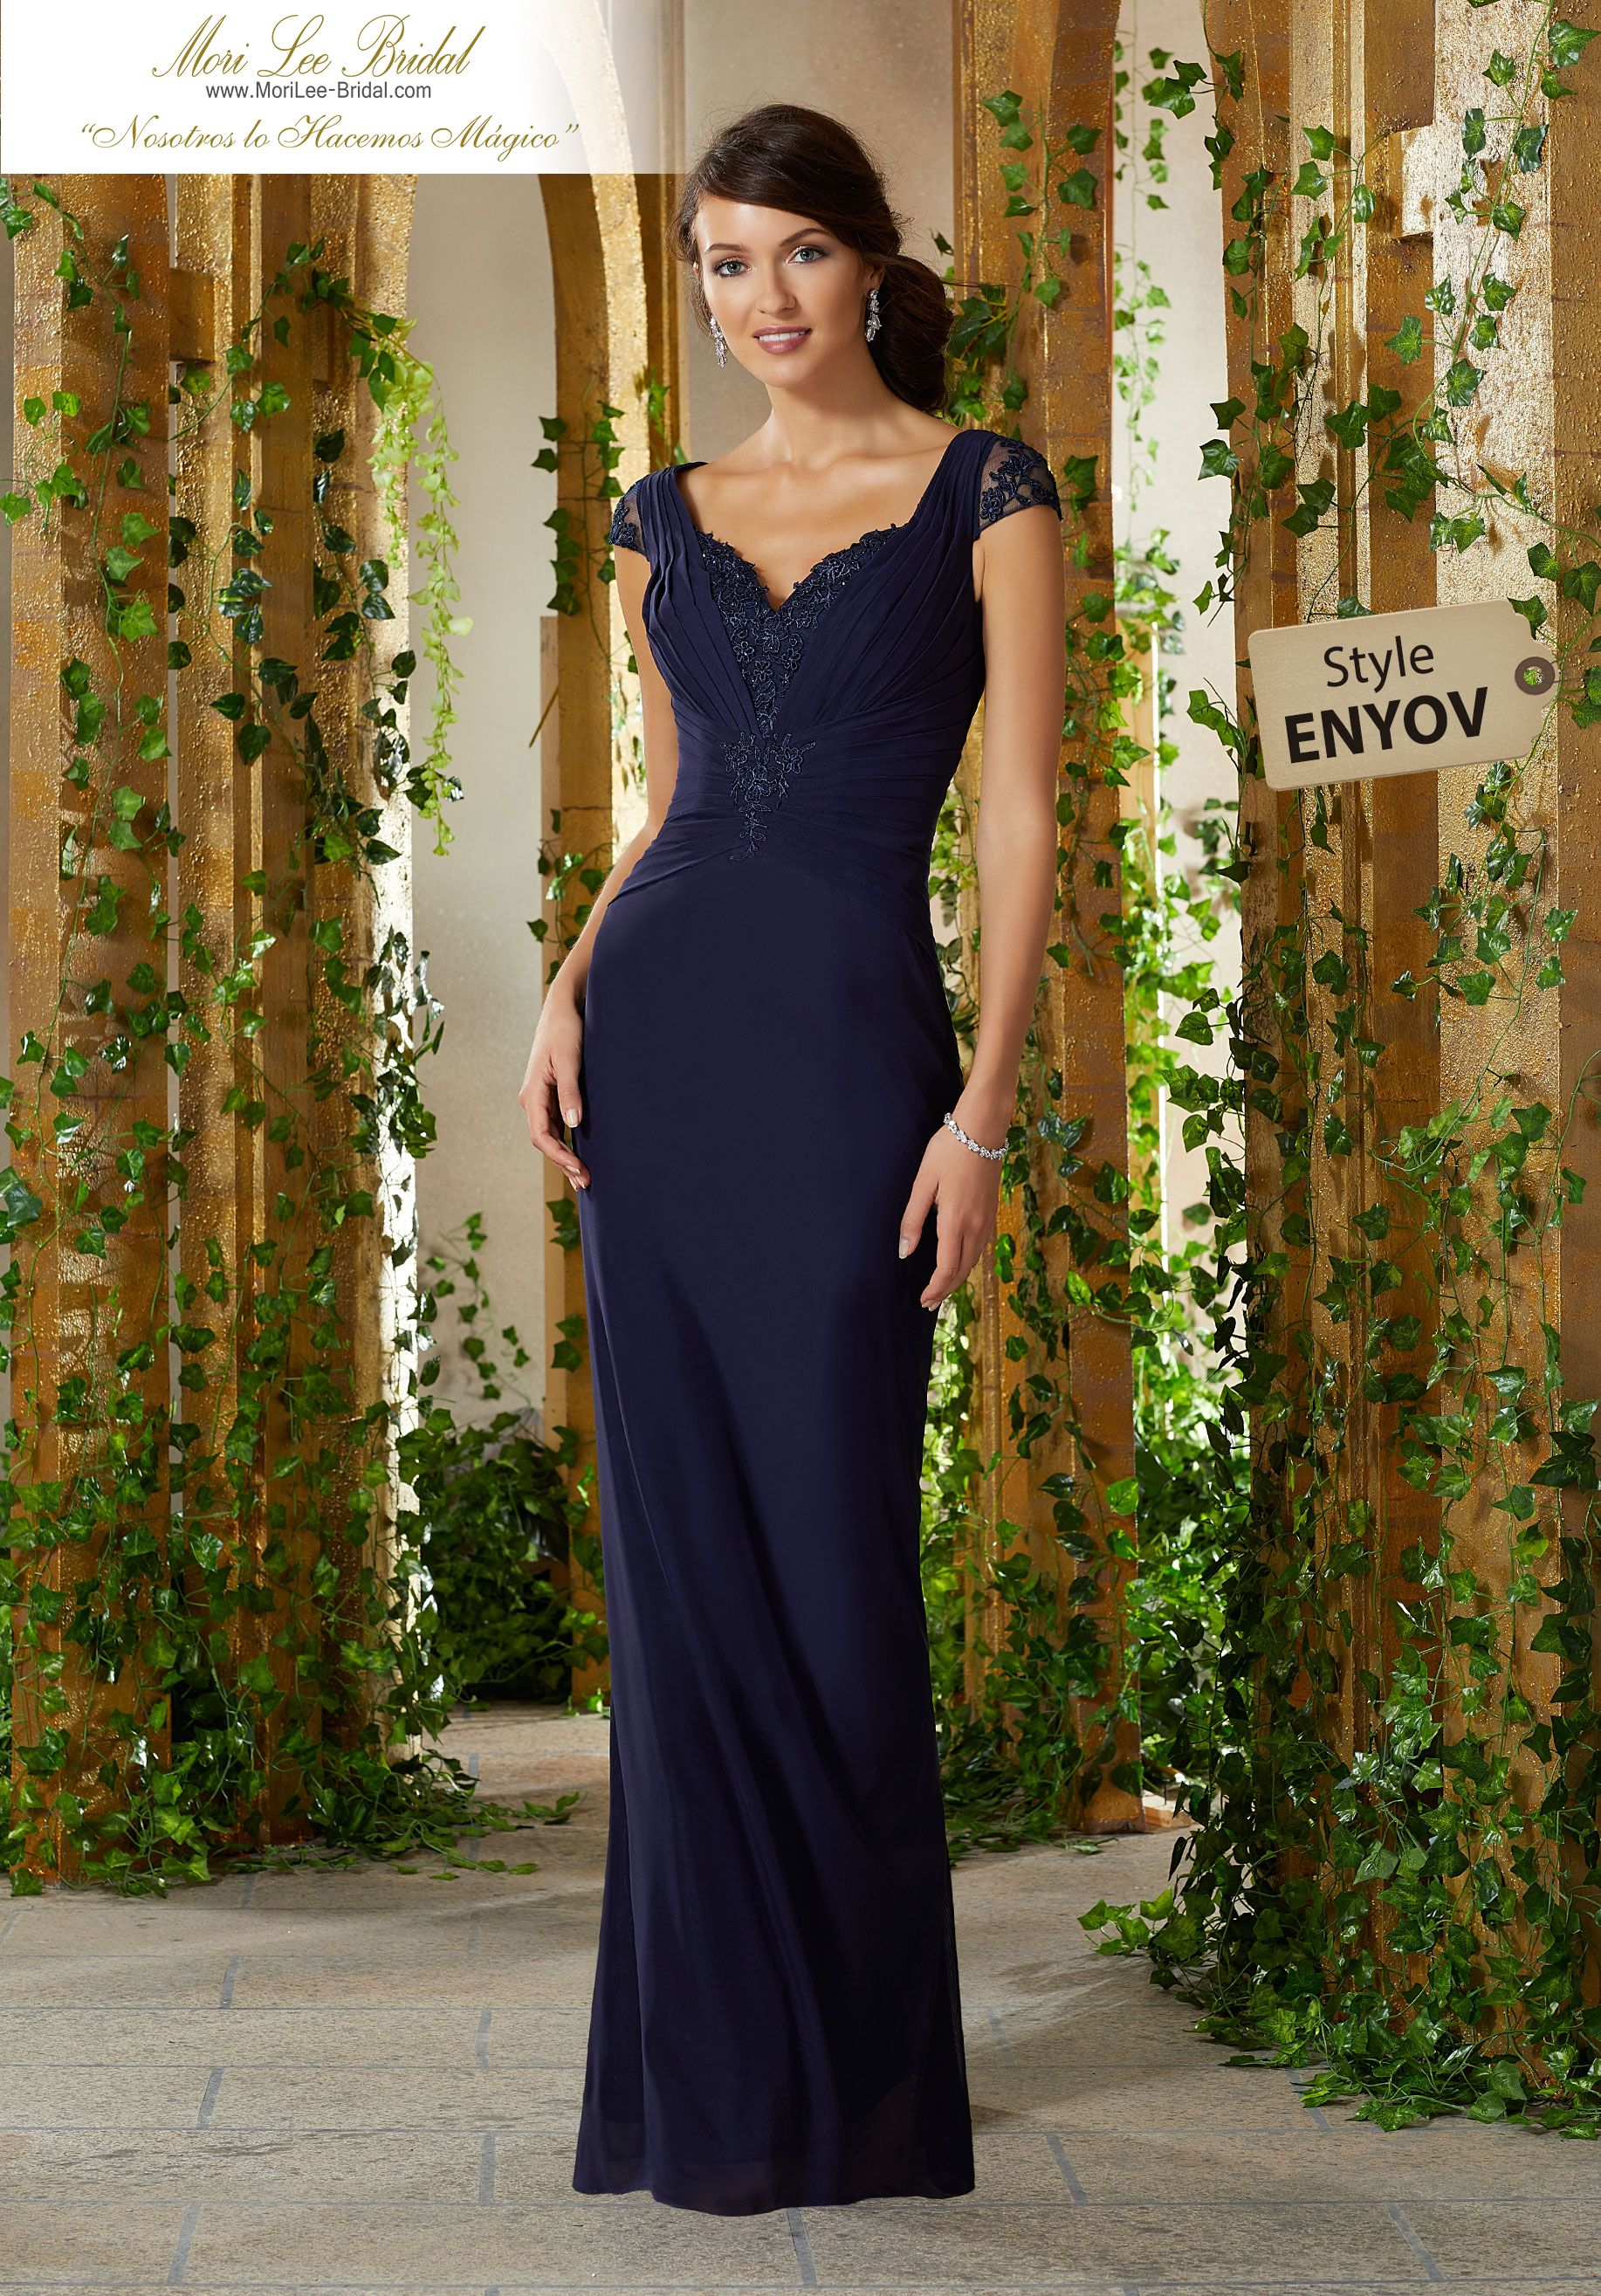 66bc8d6b3dc Stretch Mesh with Beaded Venice Lace Appliqués Form Fitting Stretch Mesh  Evening Gown Featuring a Draped